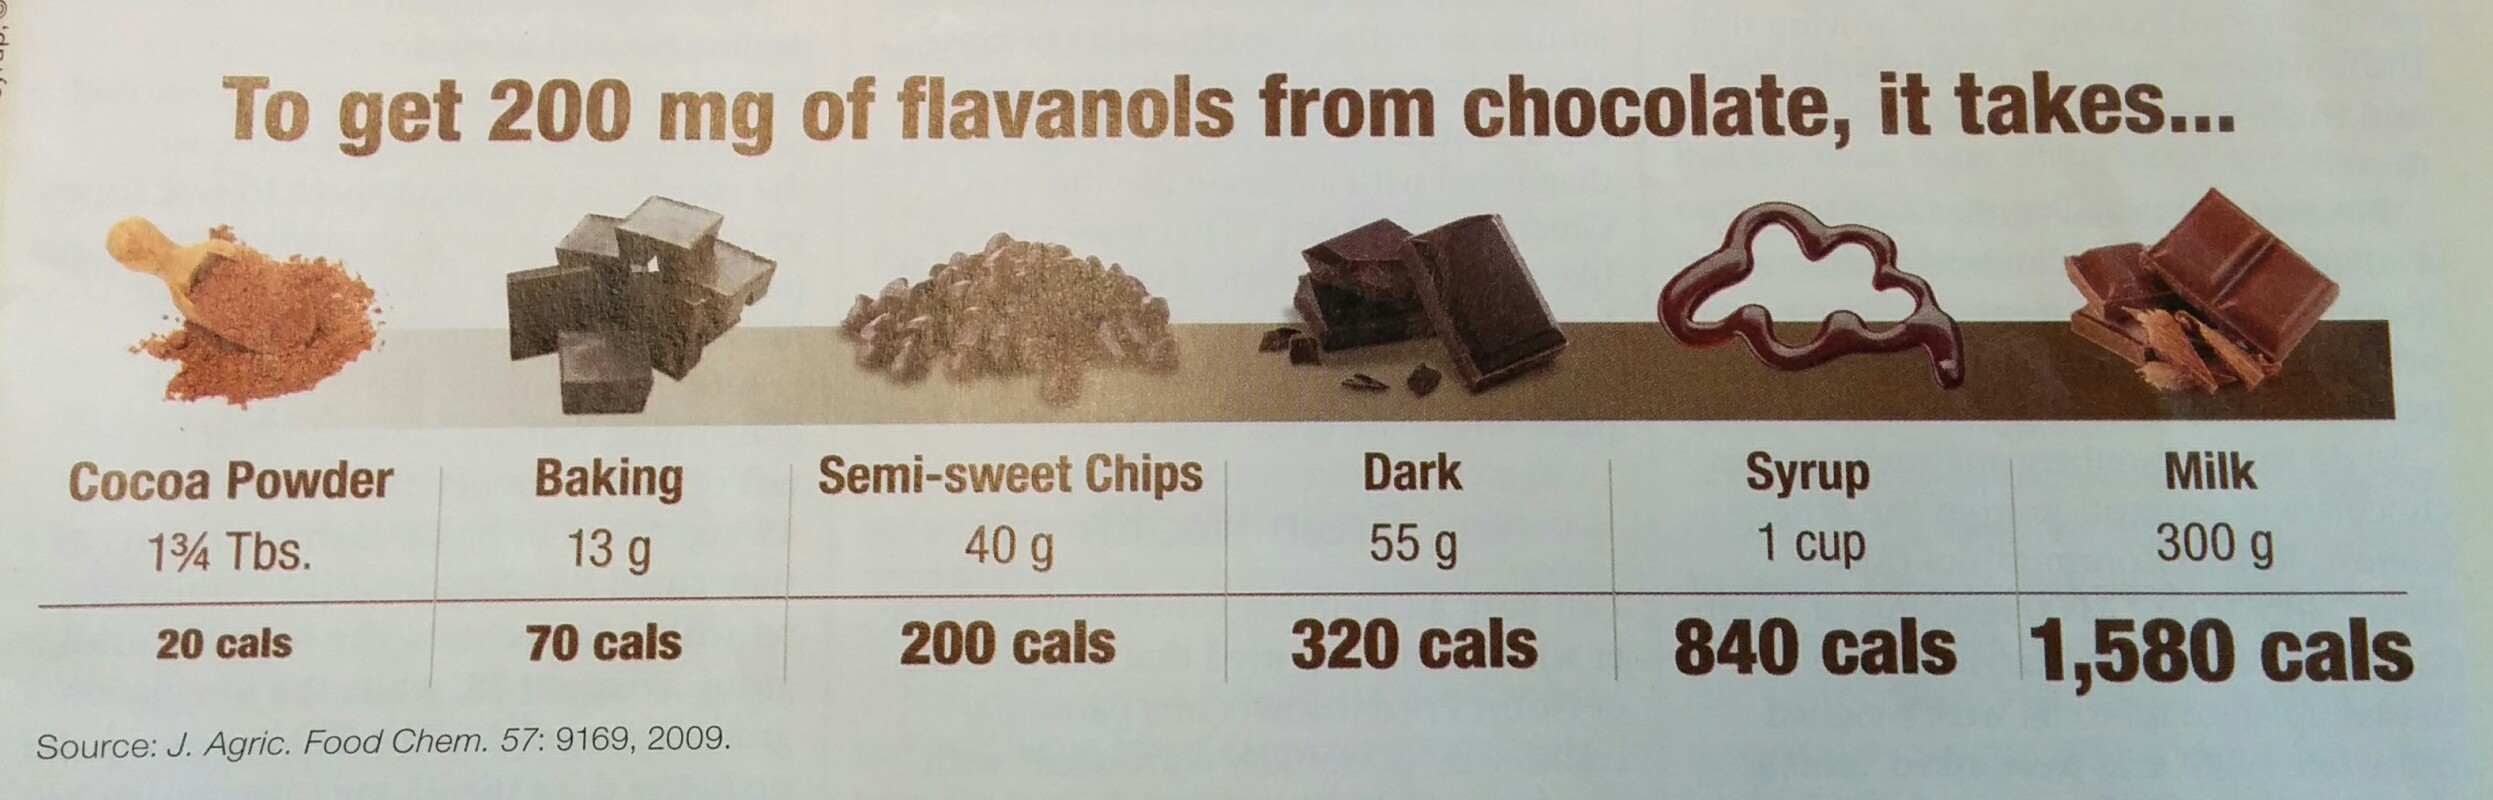 Chocolate isn't good for you after all